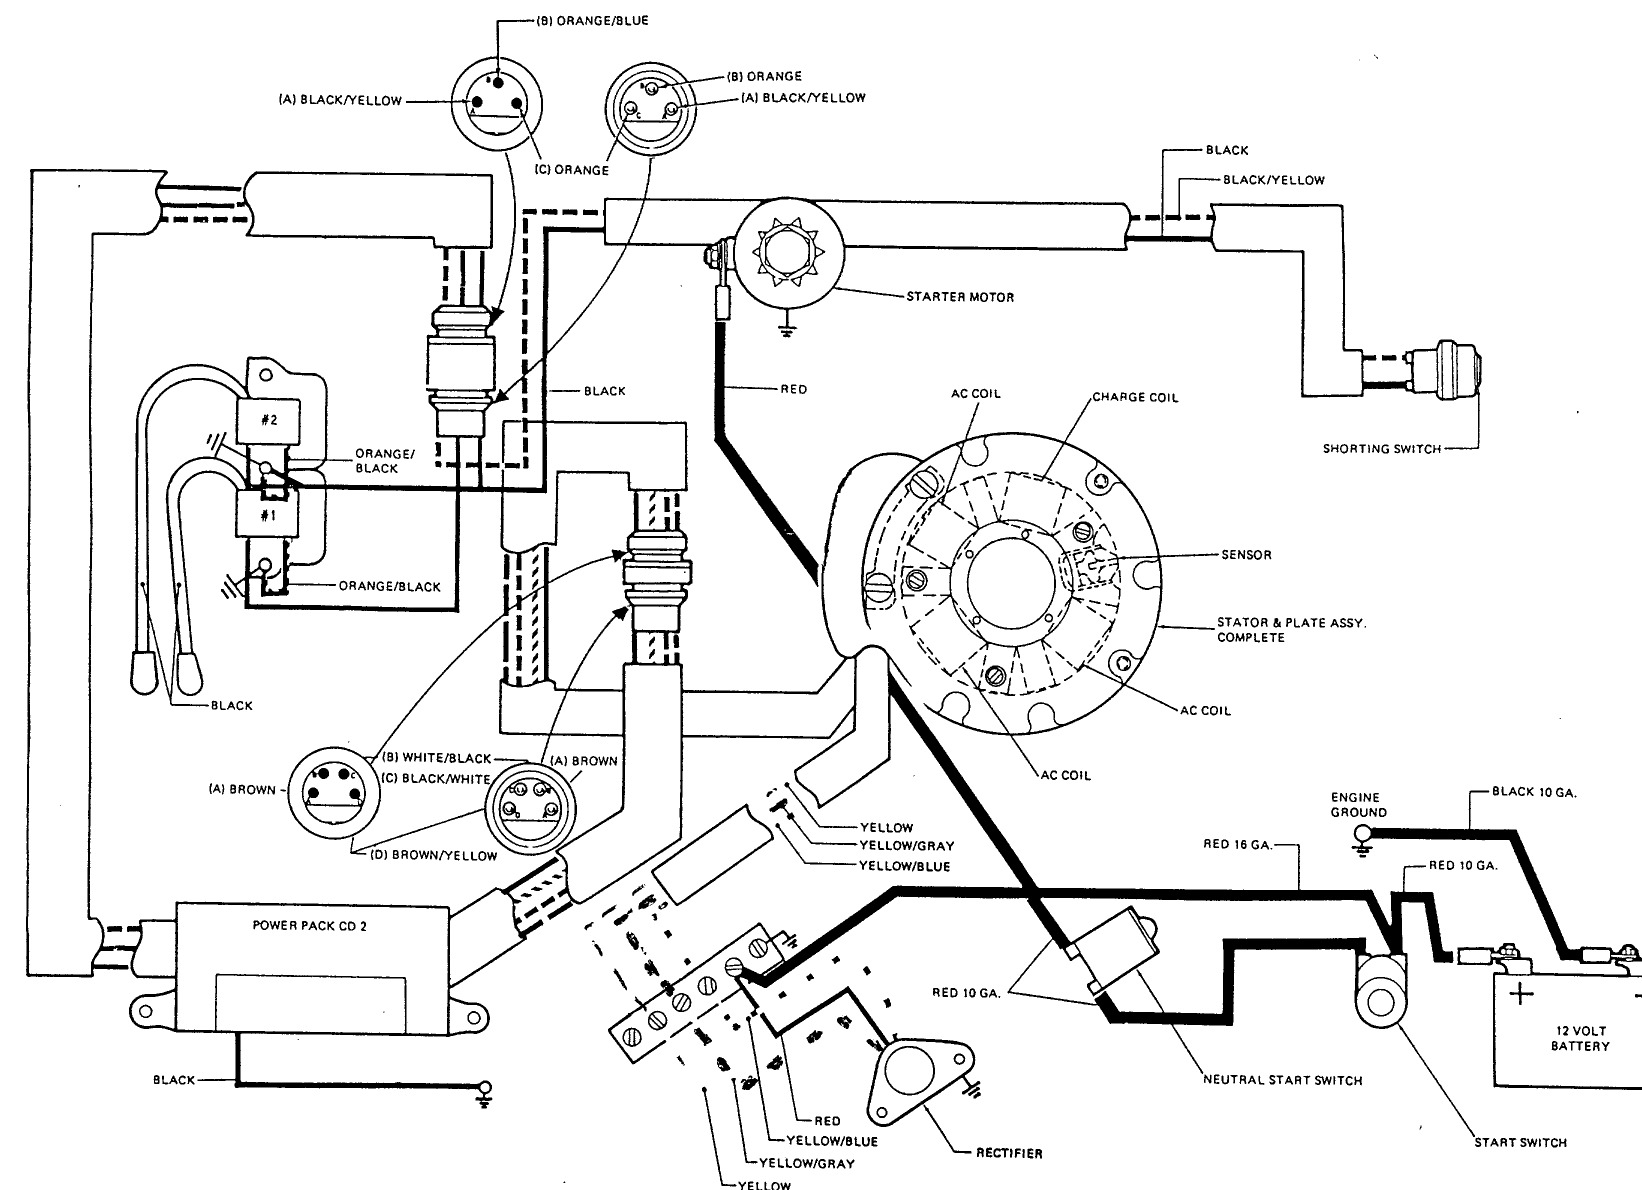 electrical diagram electric maintaining johnson evinrude 9 Fraitliner Diesel Wireing Harness at gsmx.co